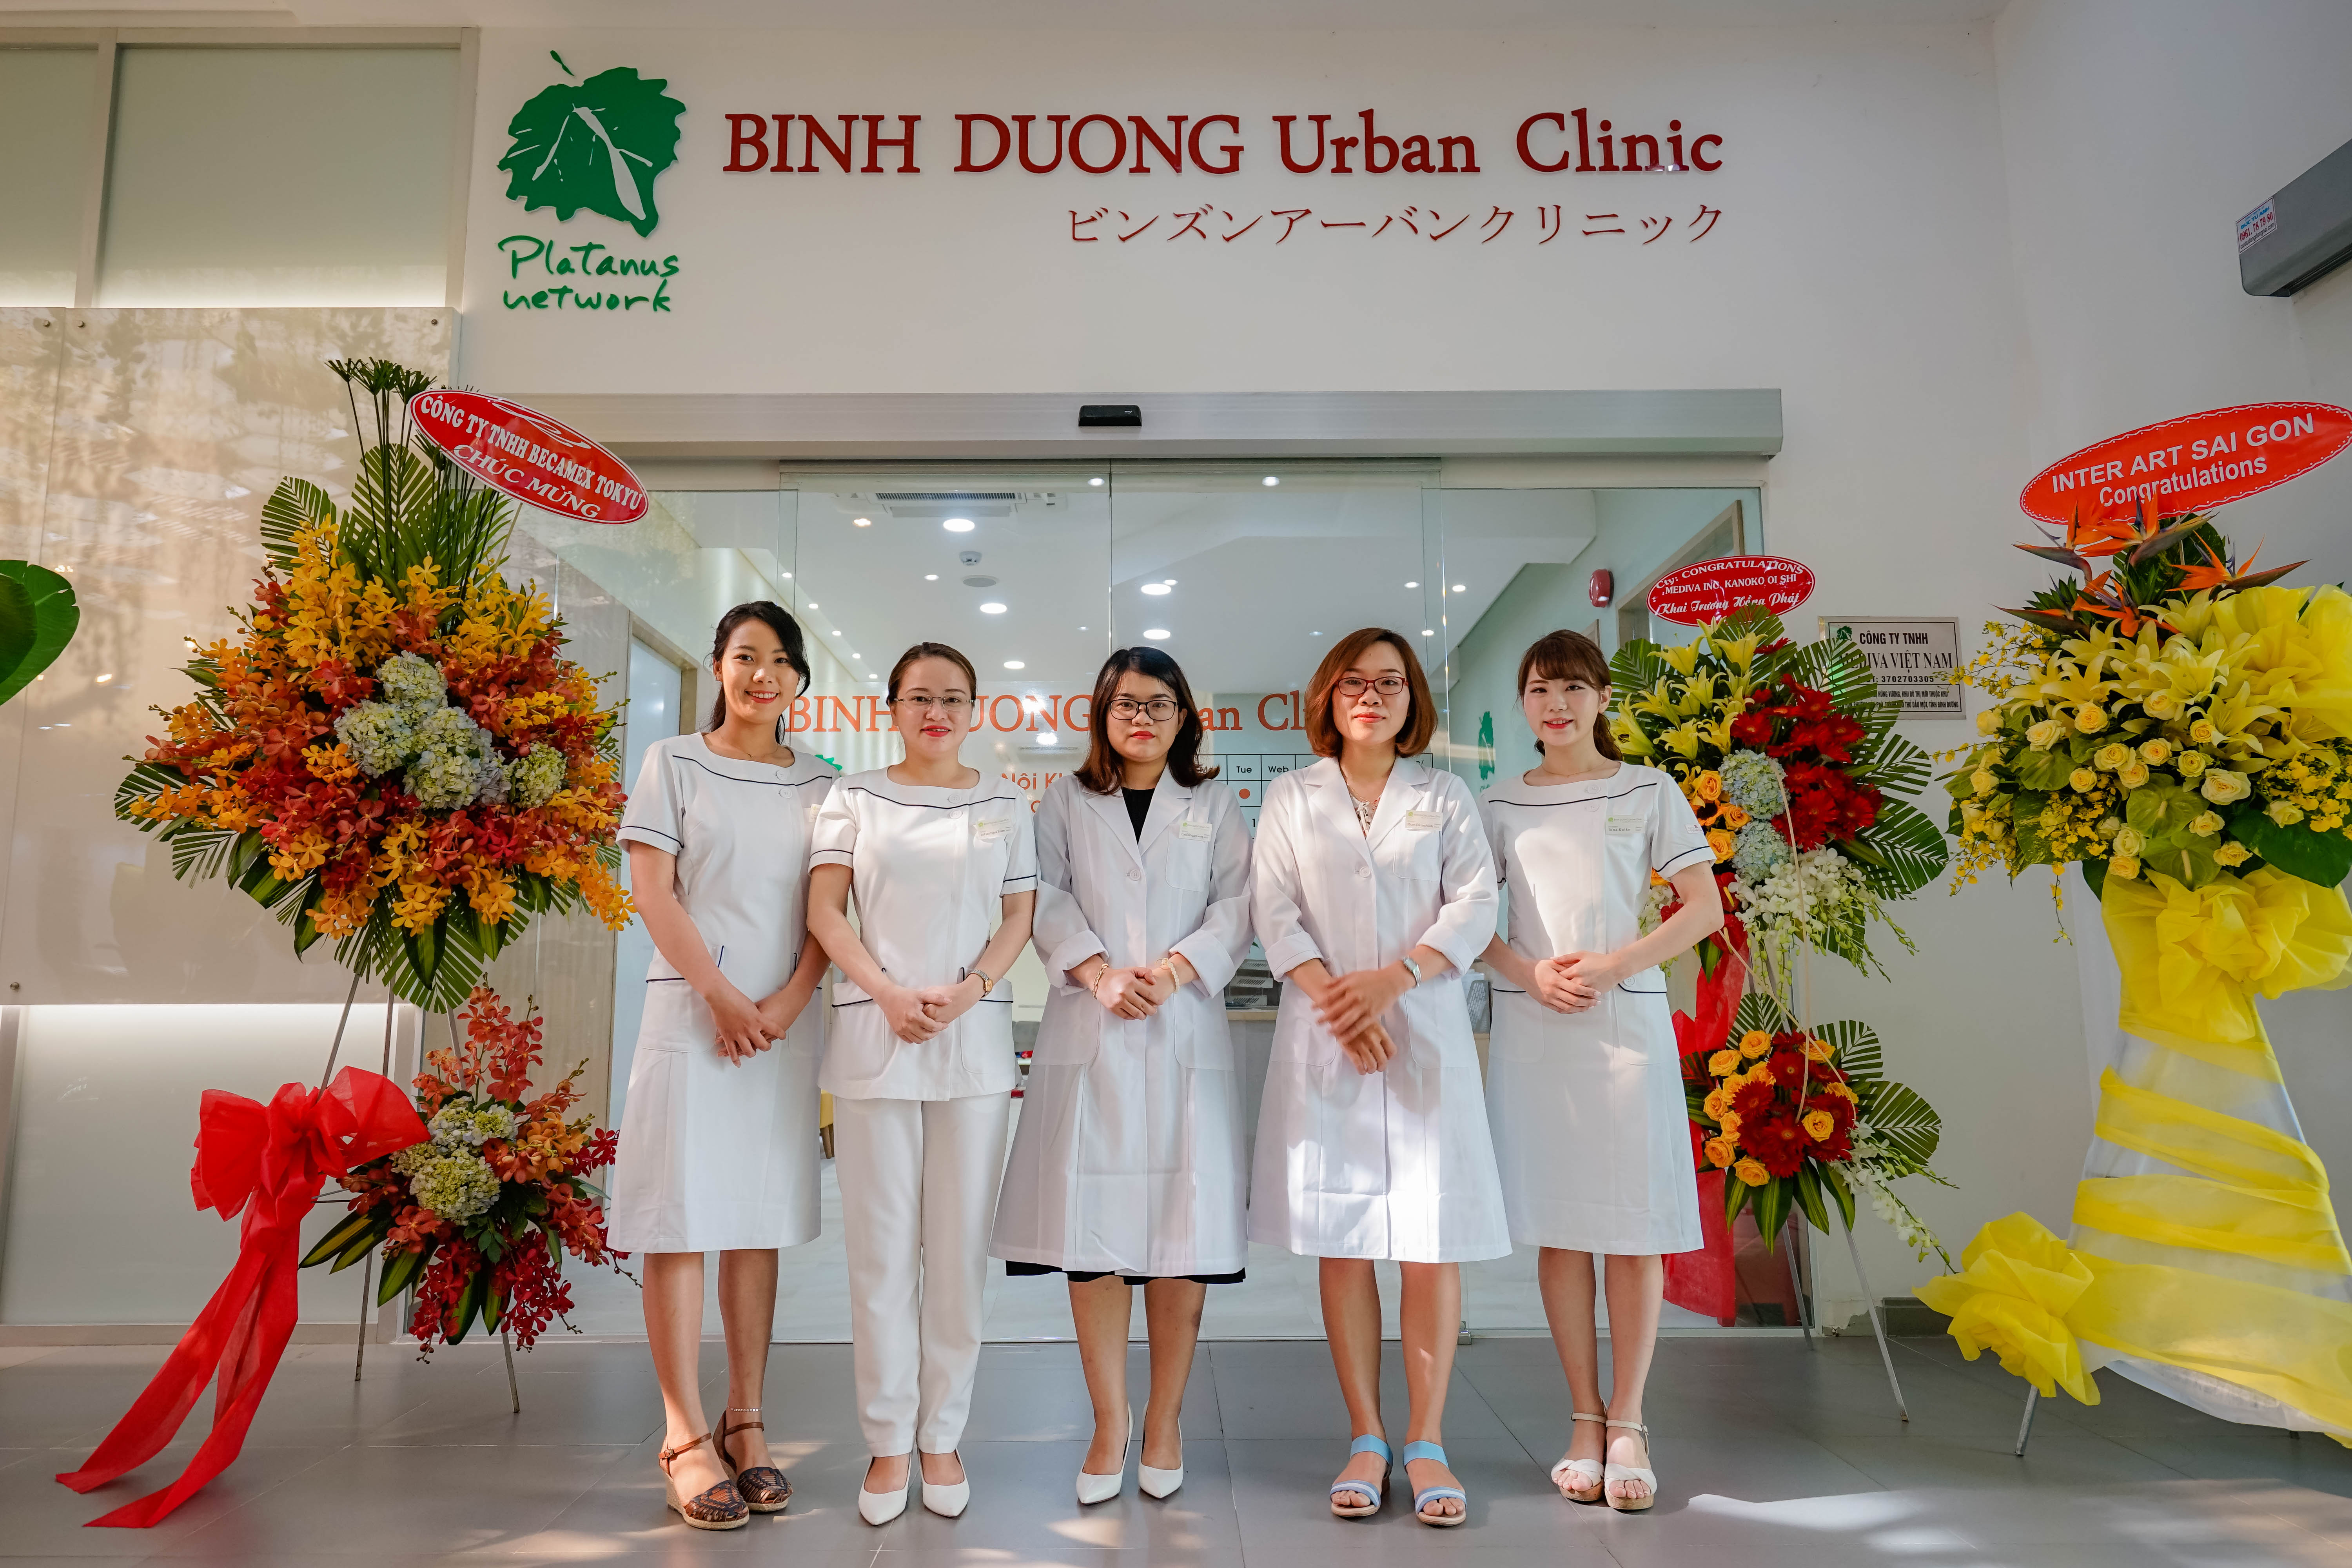 BINH DUONG URBAN CLINIC – WITH 100% INVESTMENT CAPITAL FROM JAPANESE MEDIVA COMPANY – OFFICIAL OPENING IN FEBRUARY 14TH, 2019